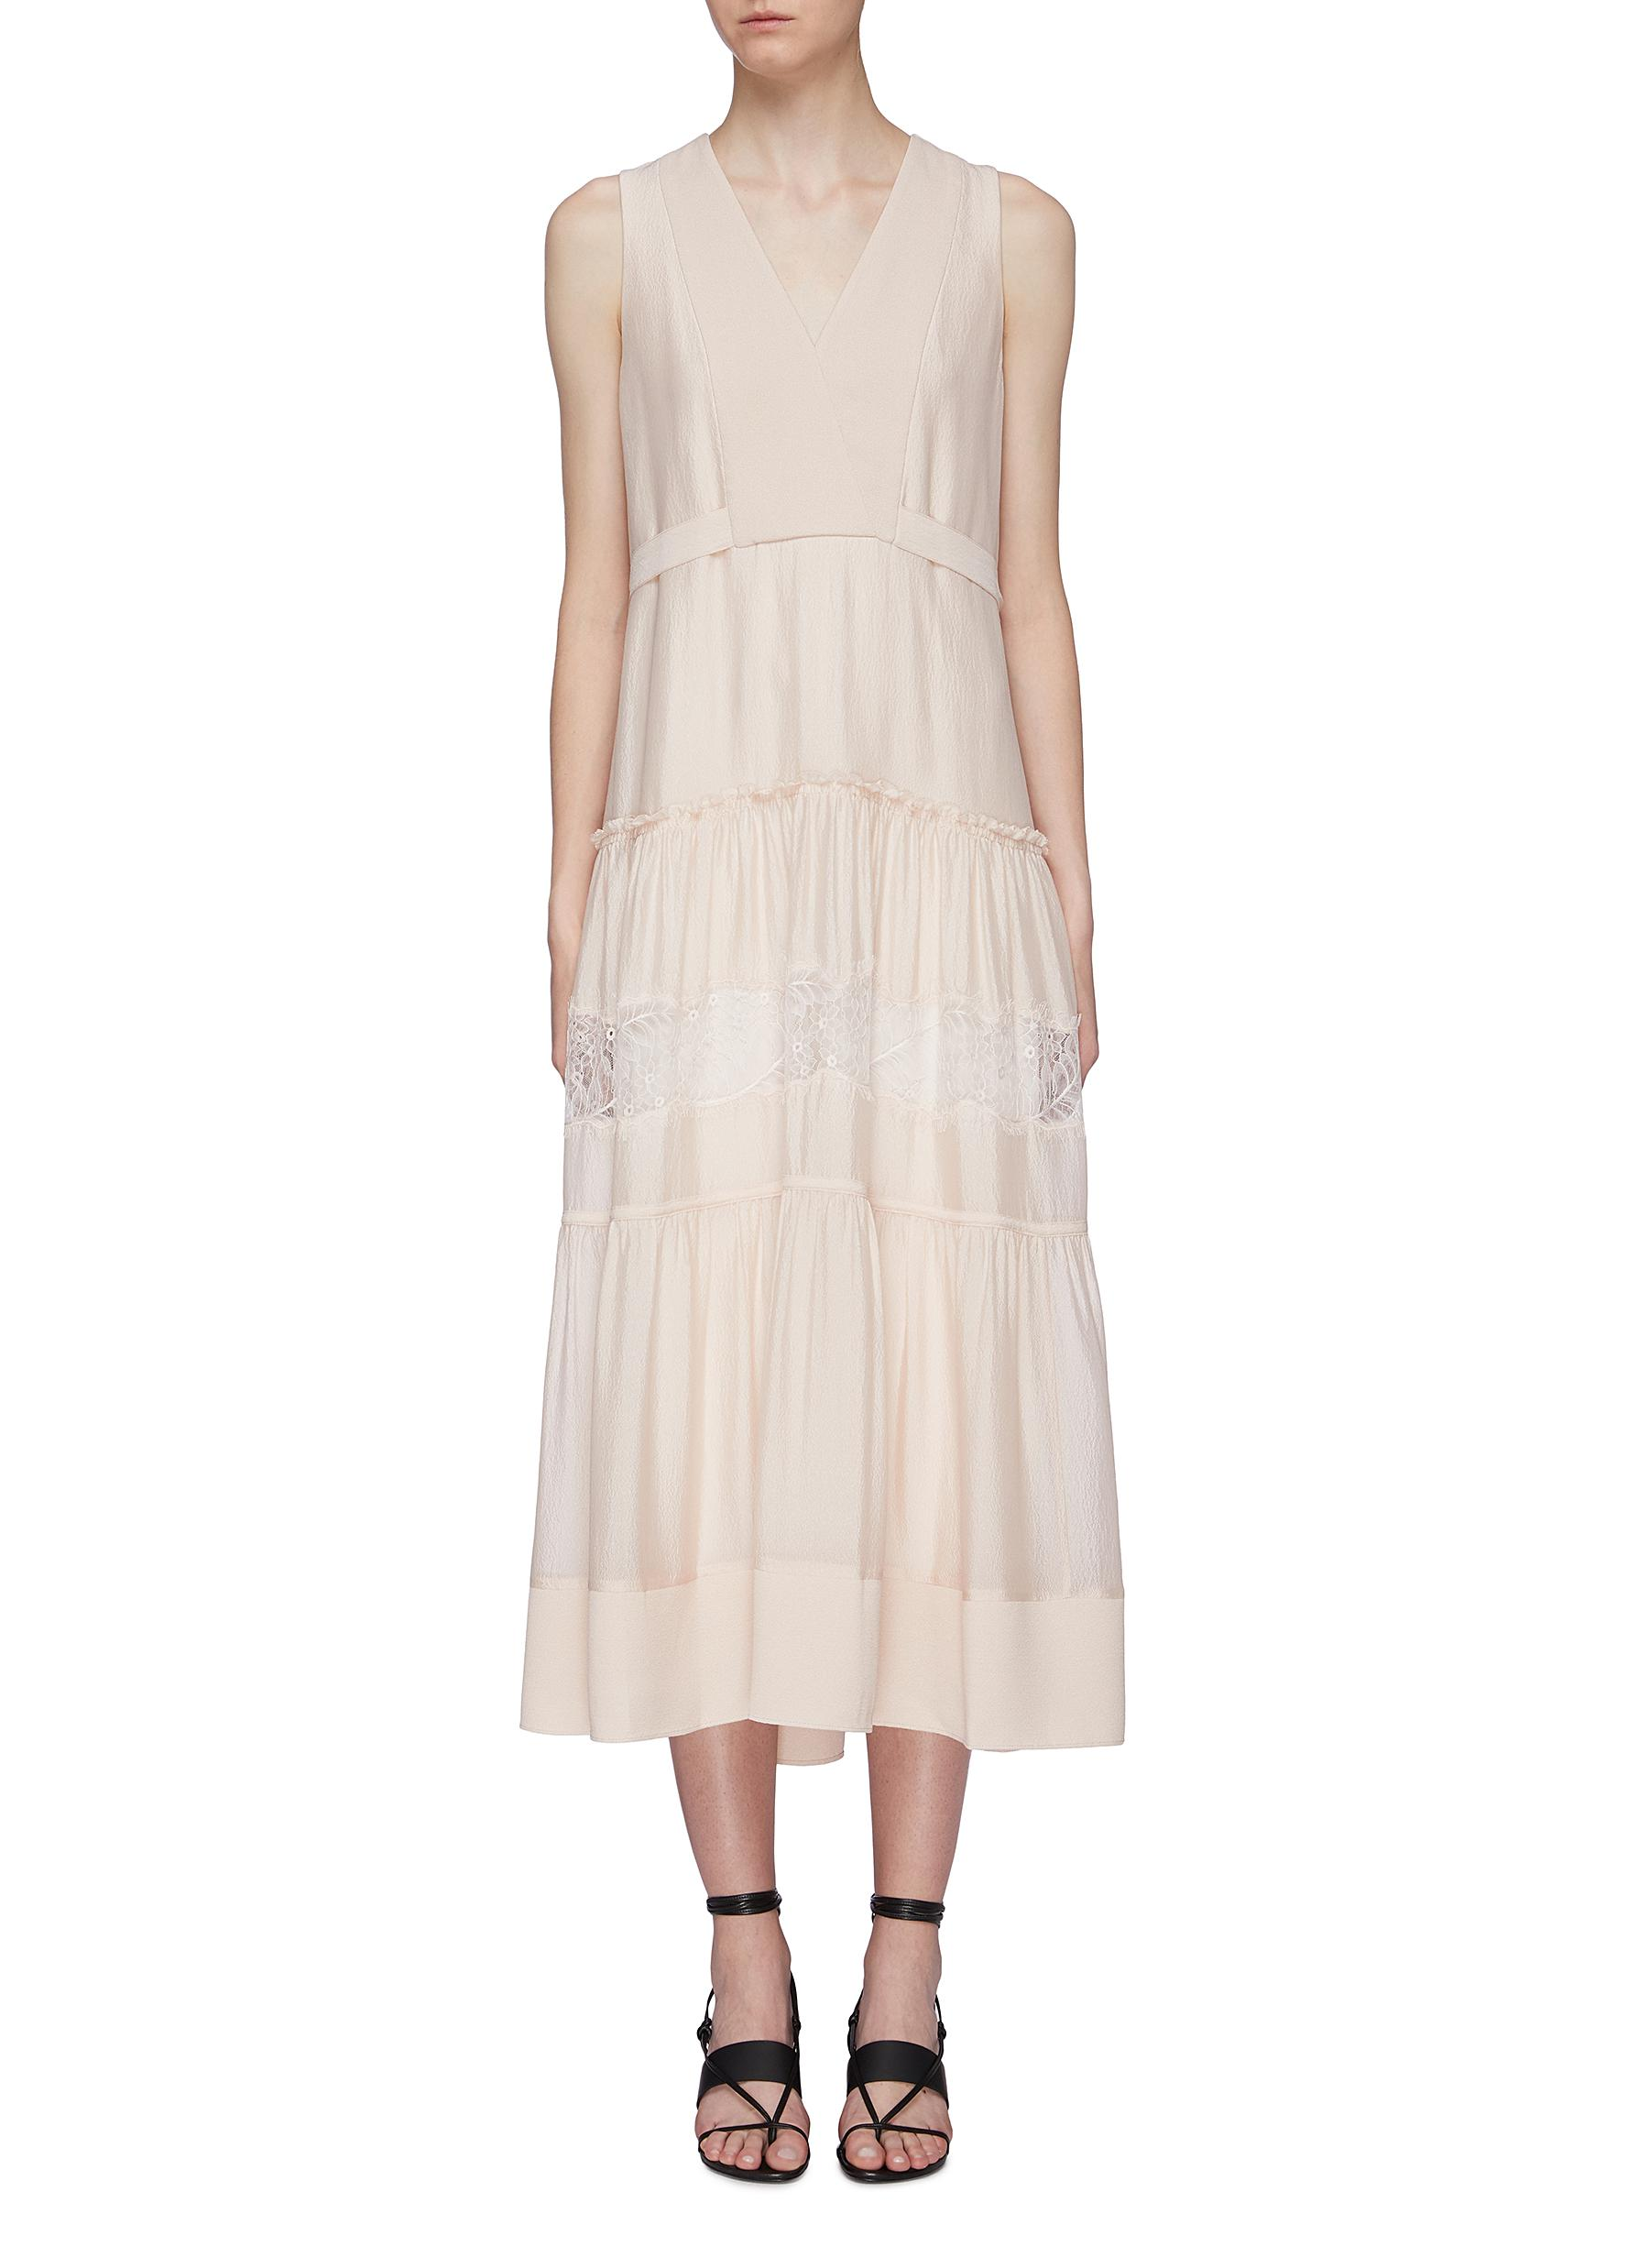 Belted back lace insert tiered silk sleeveless dress by 3.1 Phillip Lim